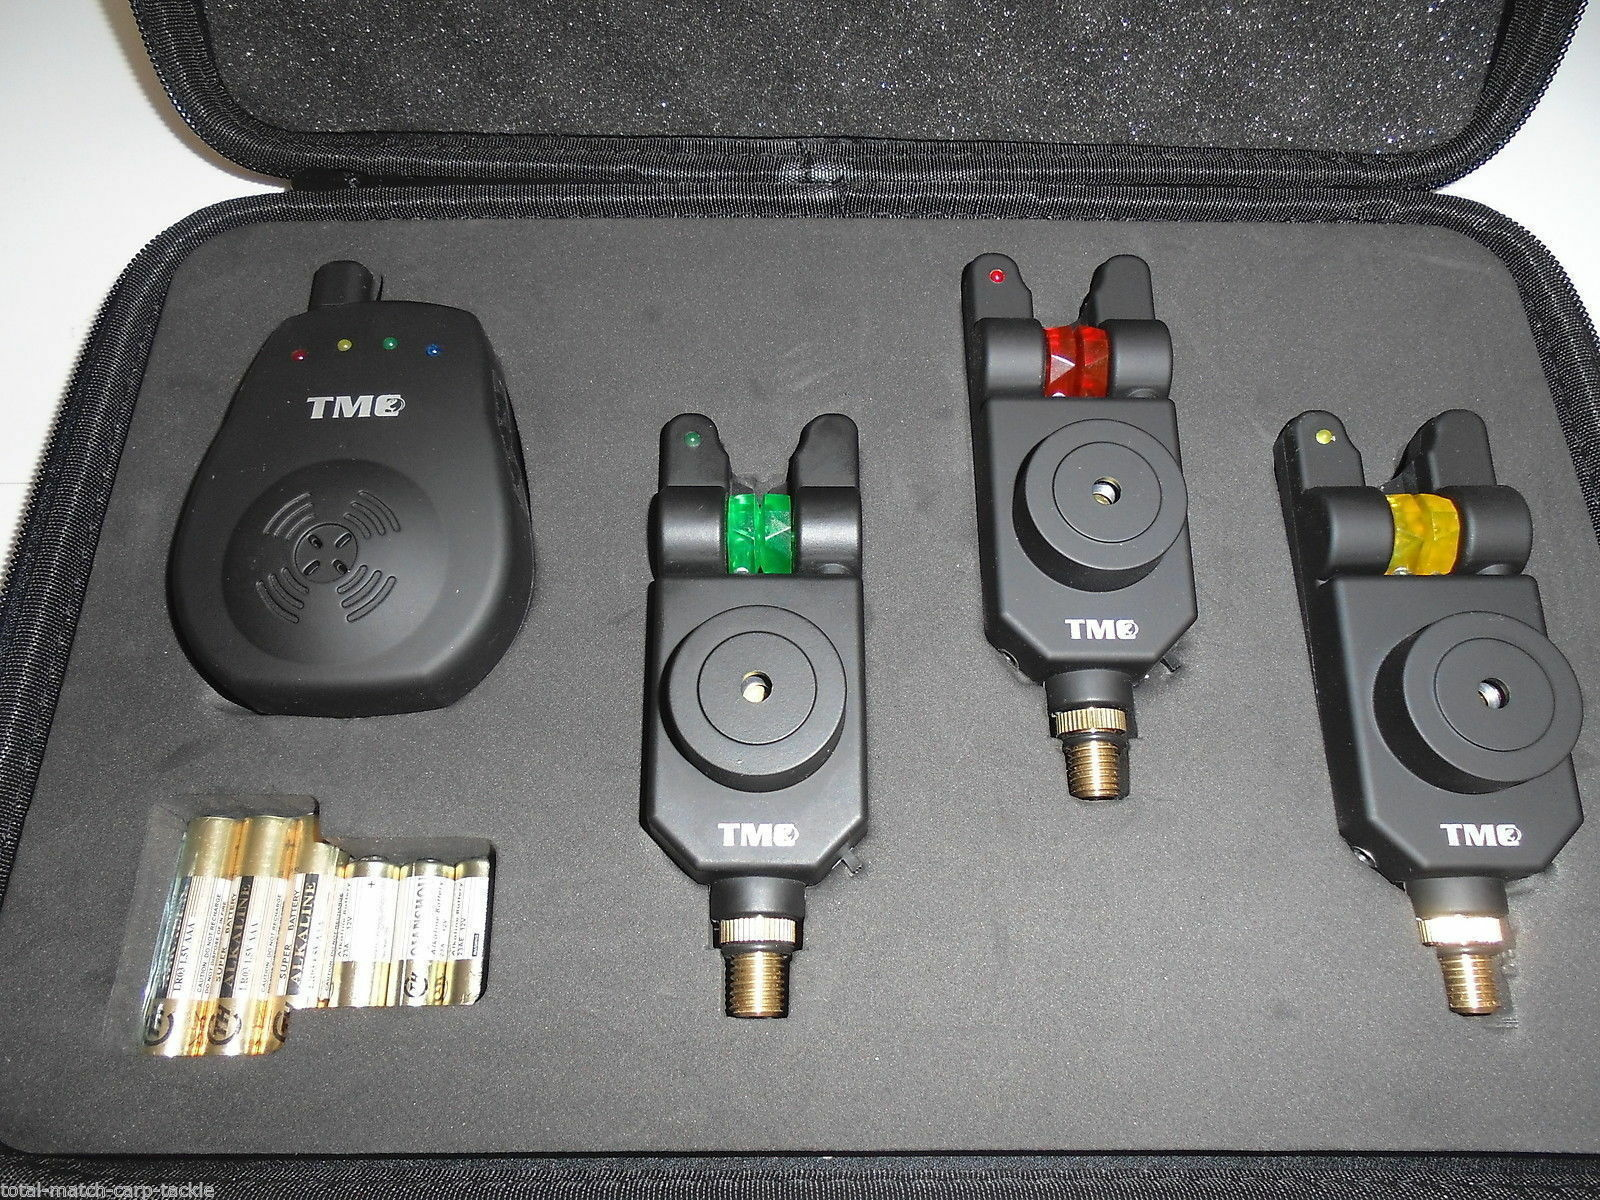 3 x TMC Mag Roller wireless Bite Alarms, Receiver, Case. Carp, LED, Free Gift